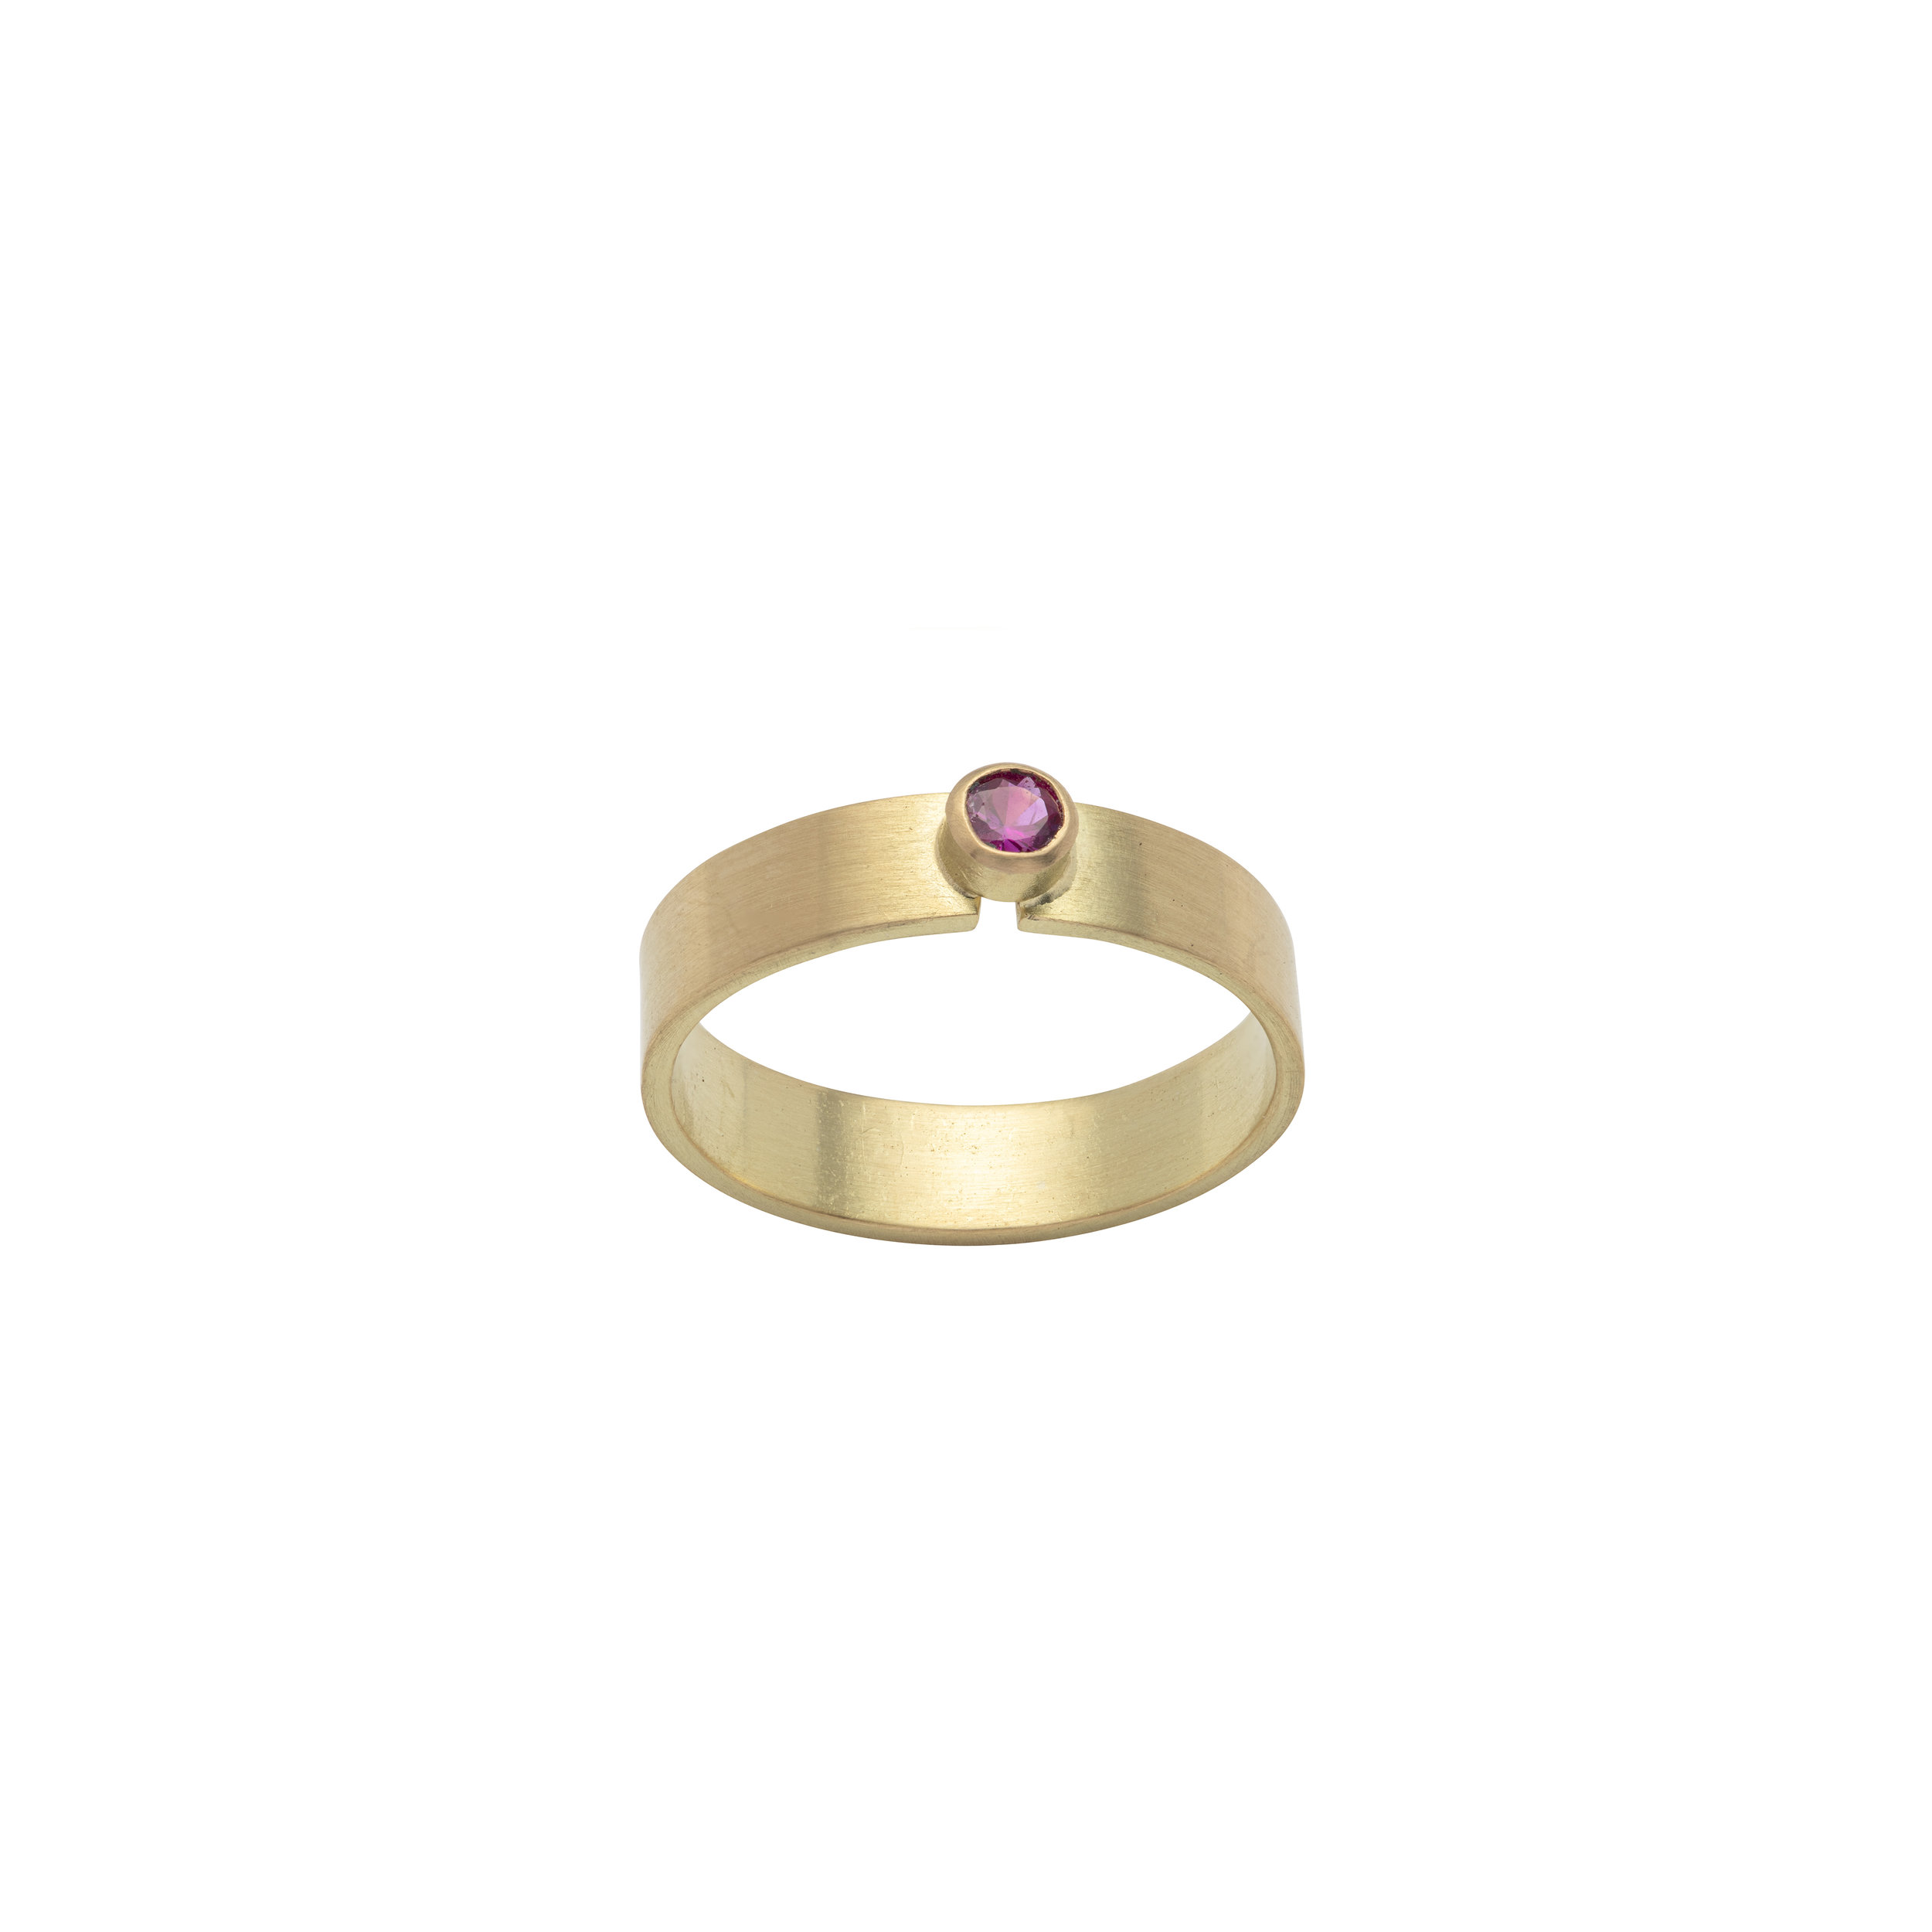 ruby ring edited large file.jpg